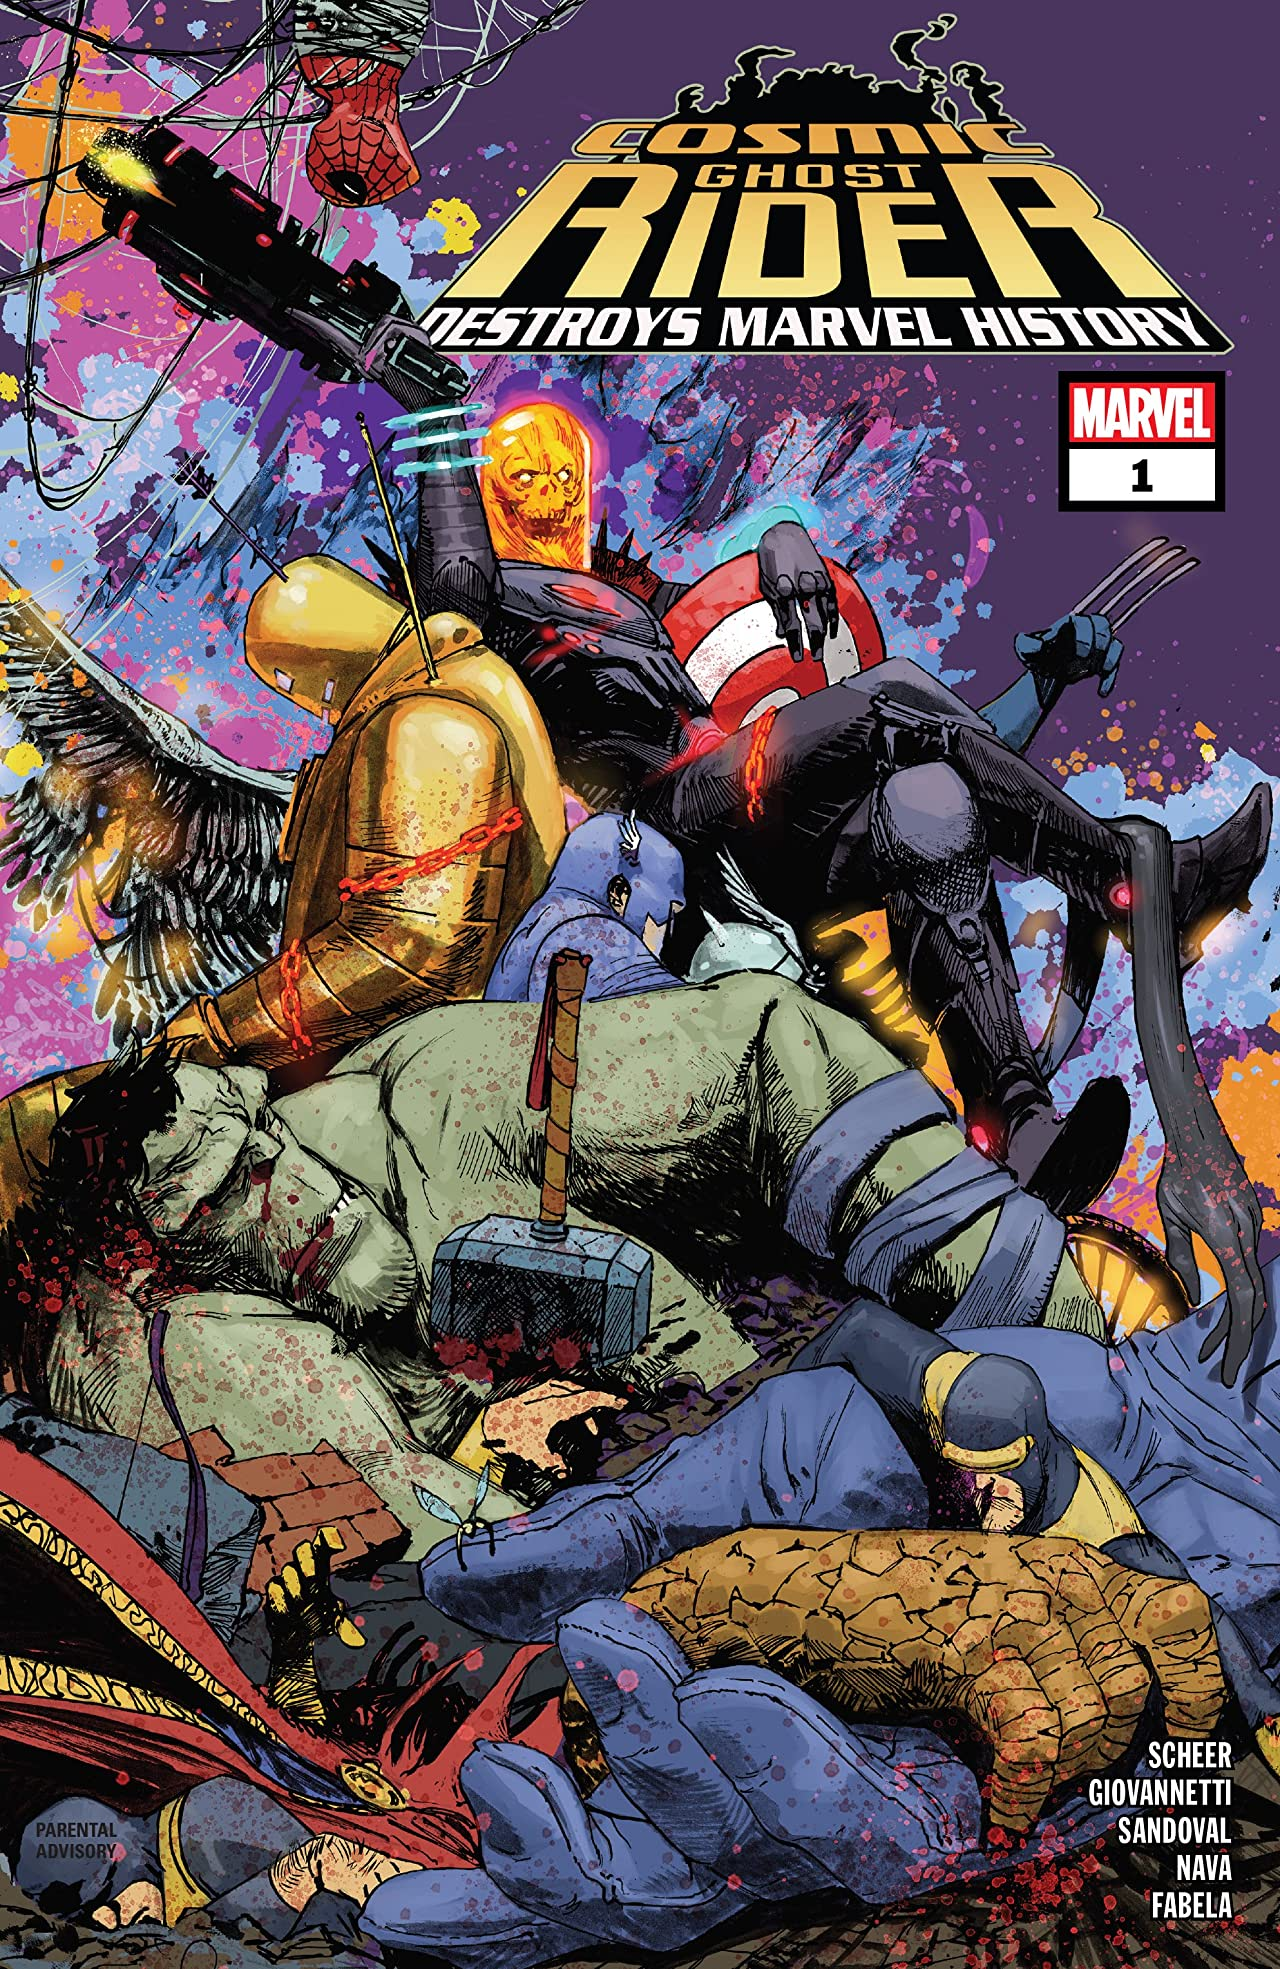 Cosmic Ghost Rider Destroys Marvel History (2019) #1 (of 6)